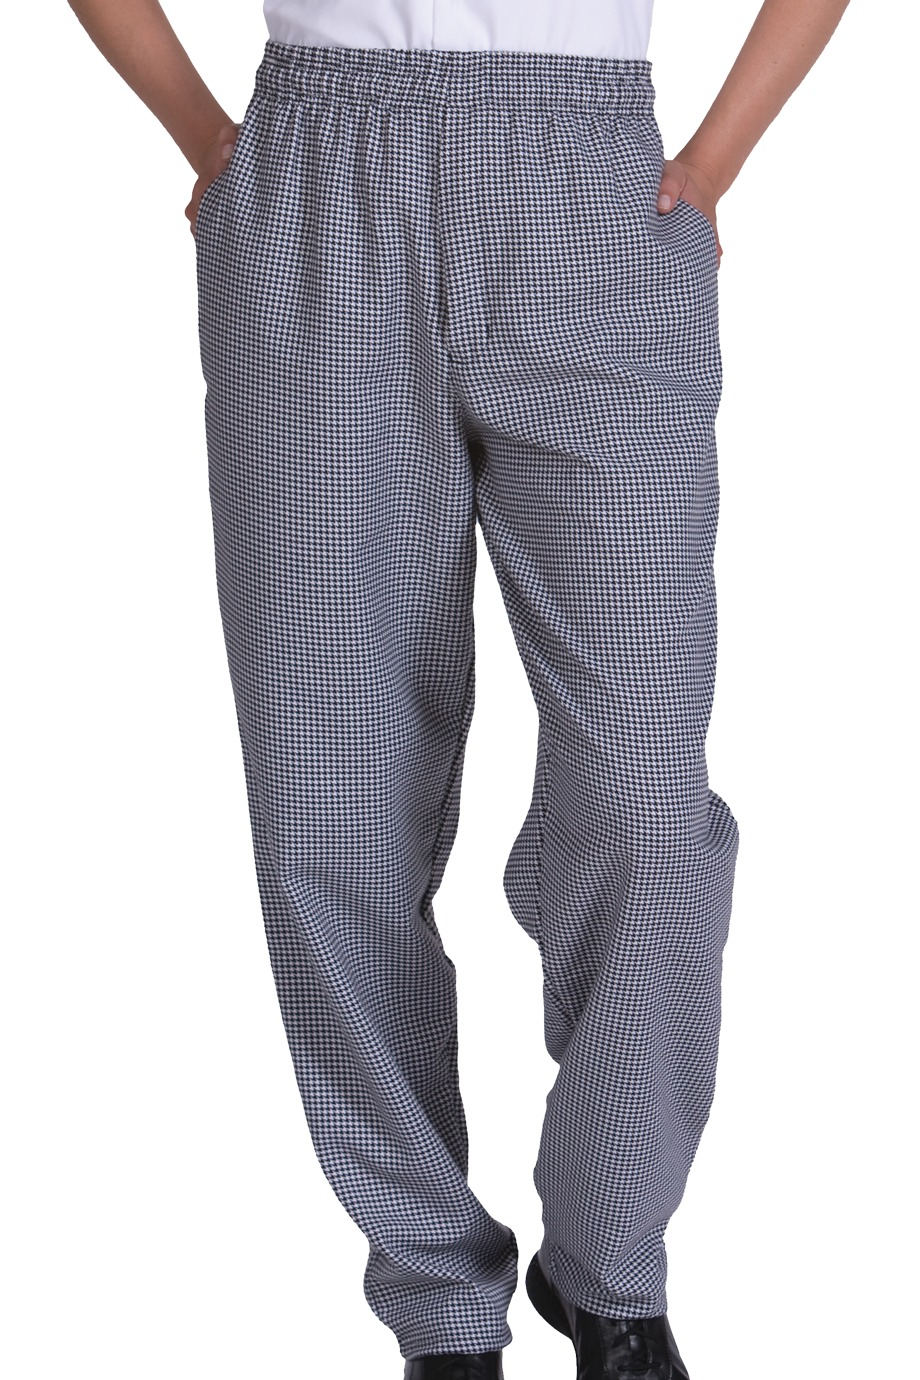 Edwards Garment 2002 - Ultimate Baggy Chef Pant